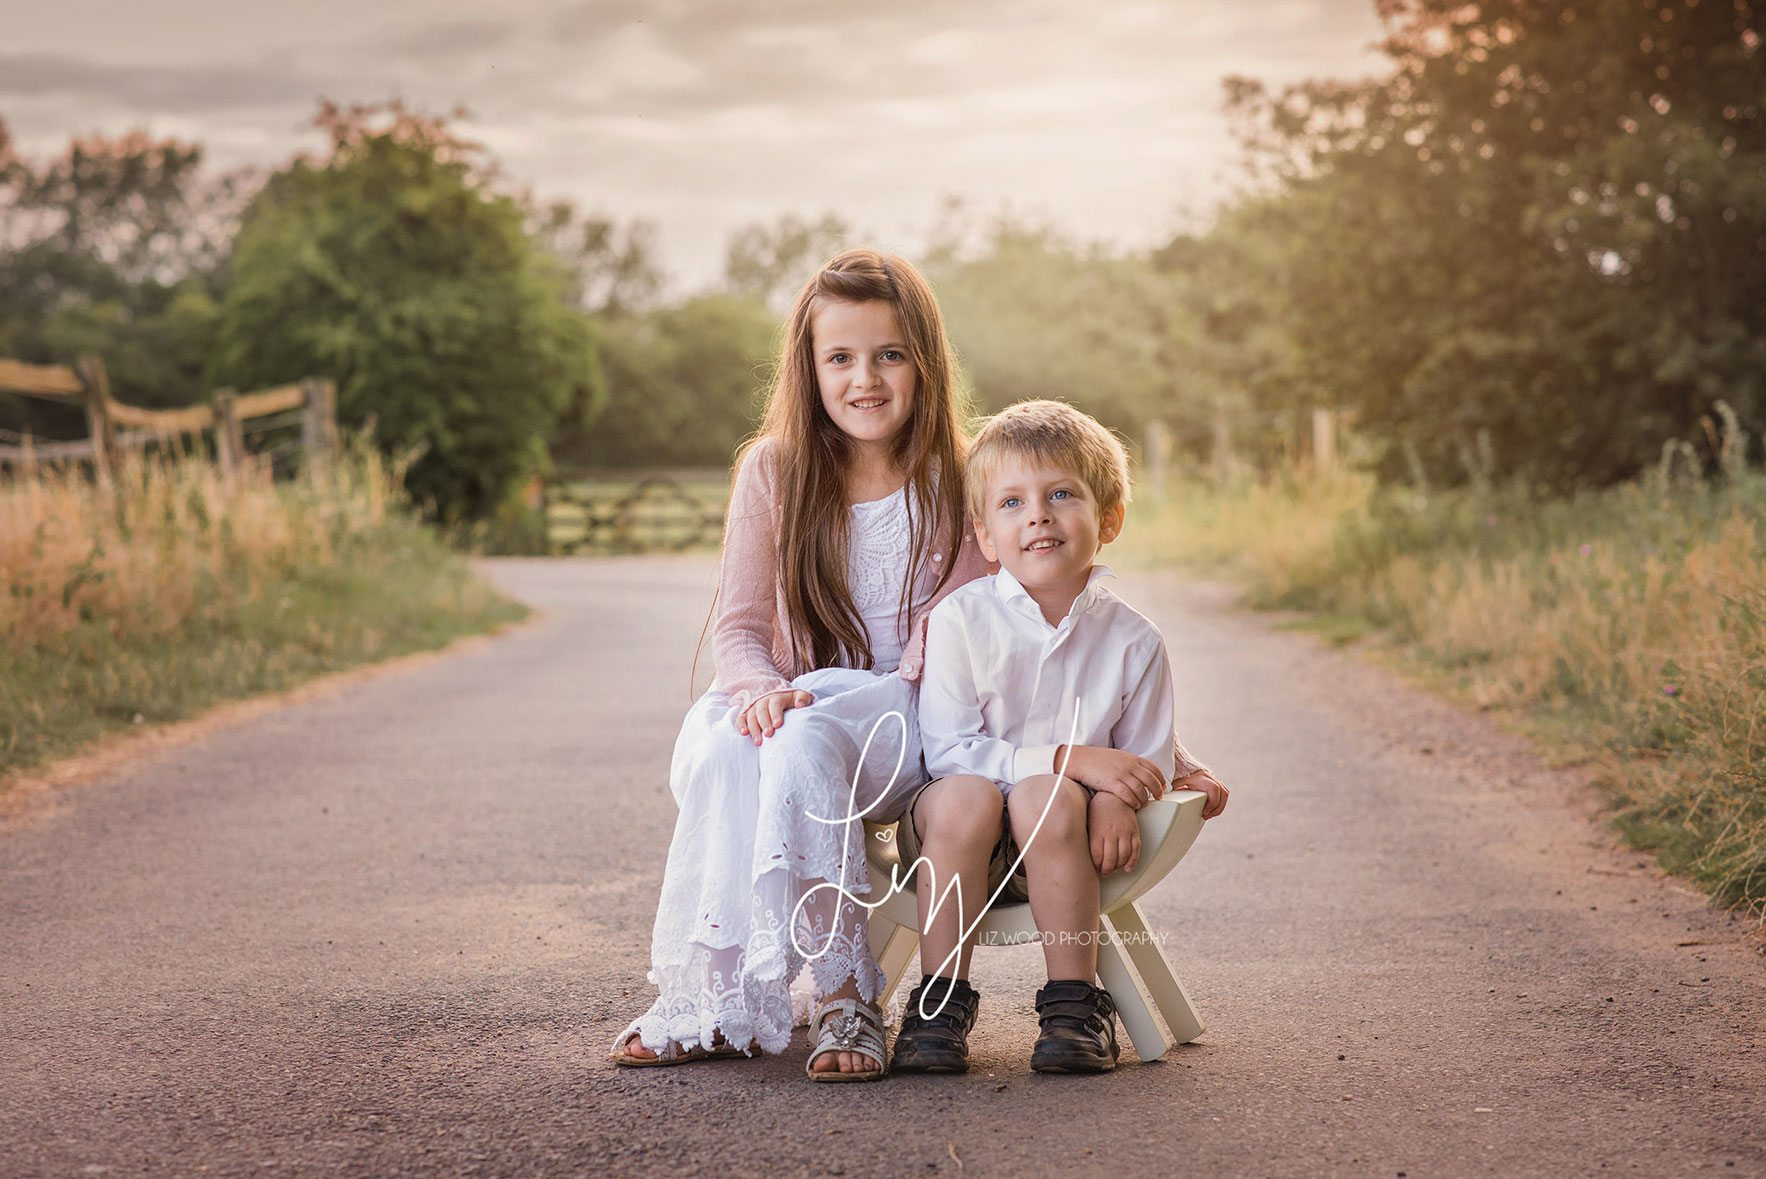 Suffolk & Essex outdoor sibling, family and child photographer